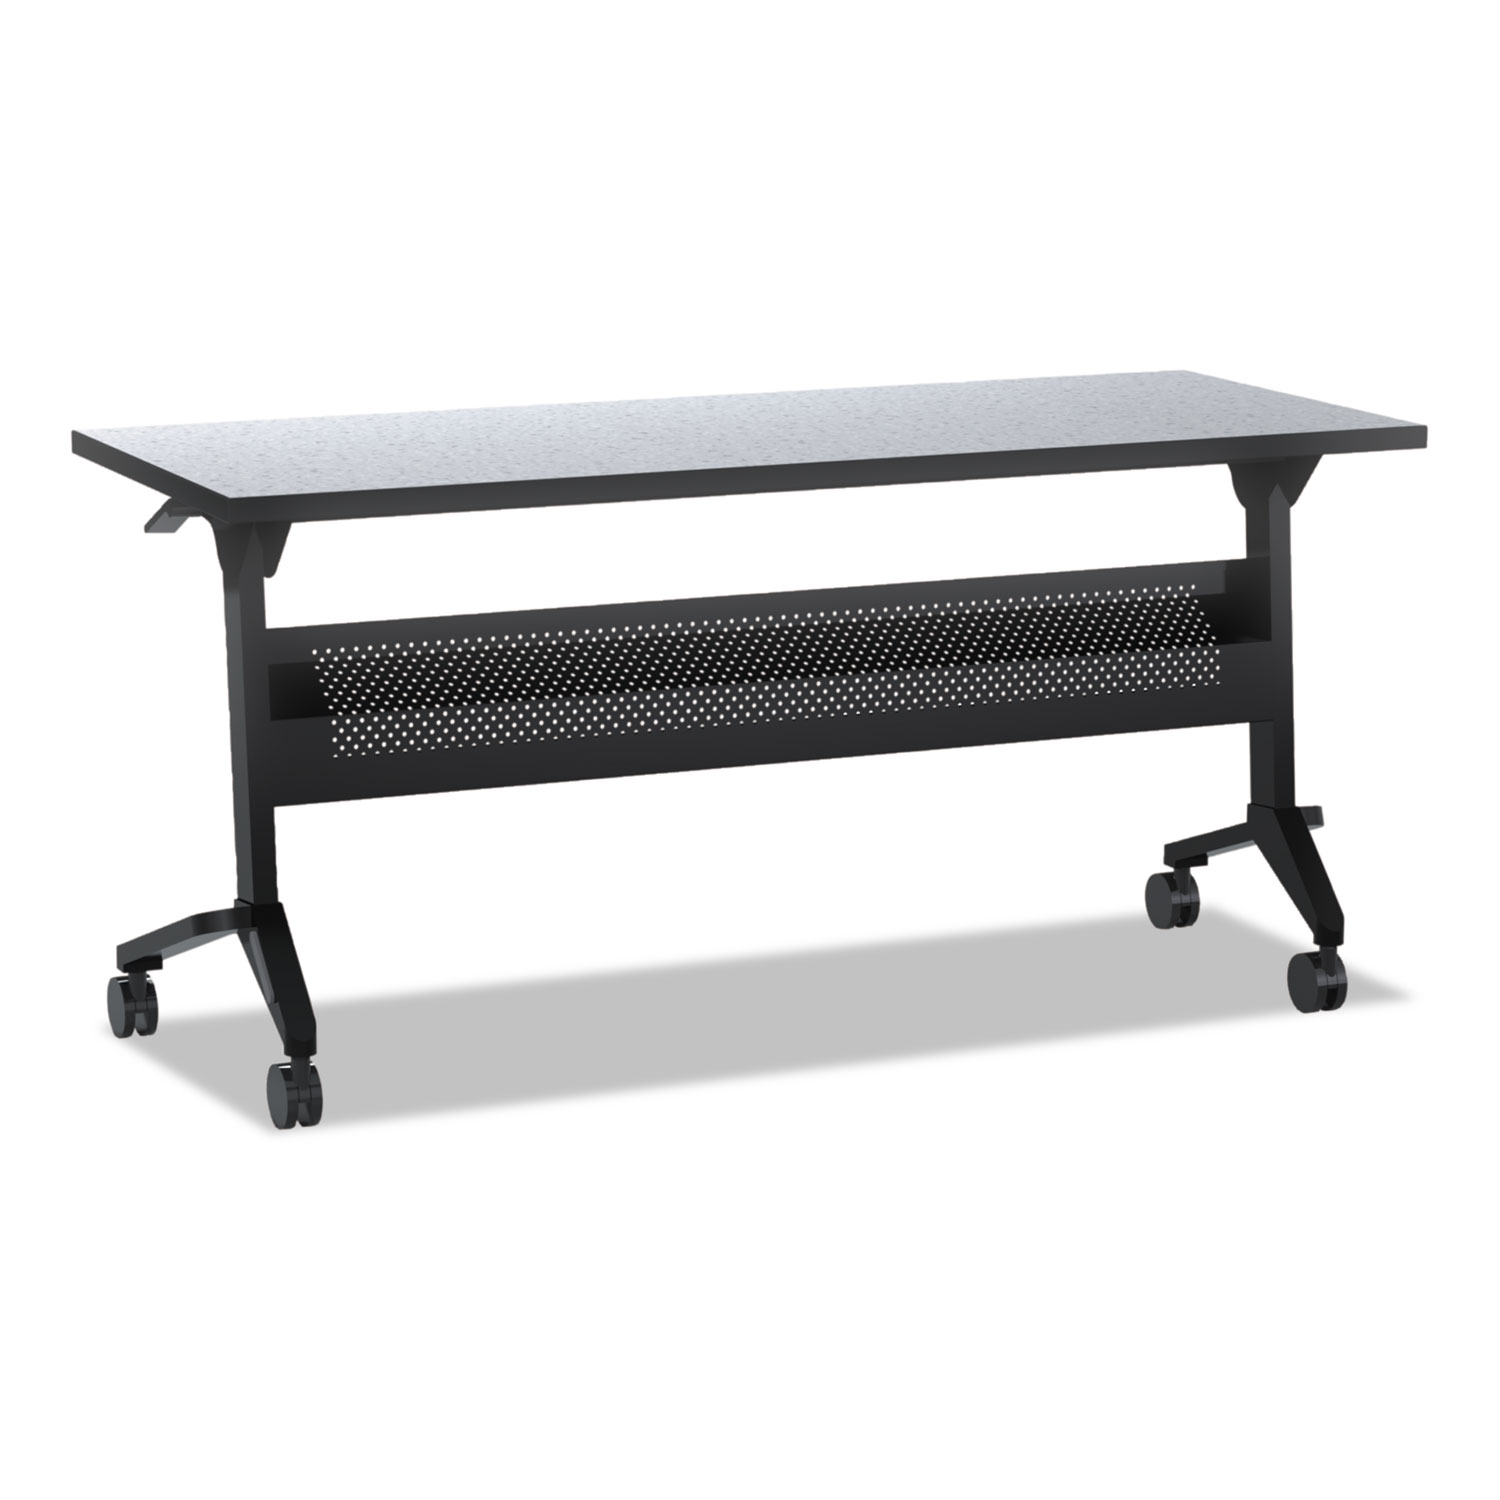 Flip-n-Go Table Top, 60w x 24d, Folkstone